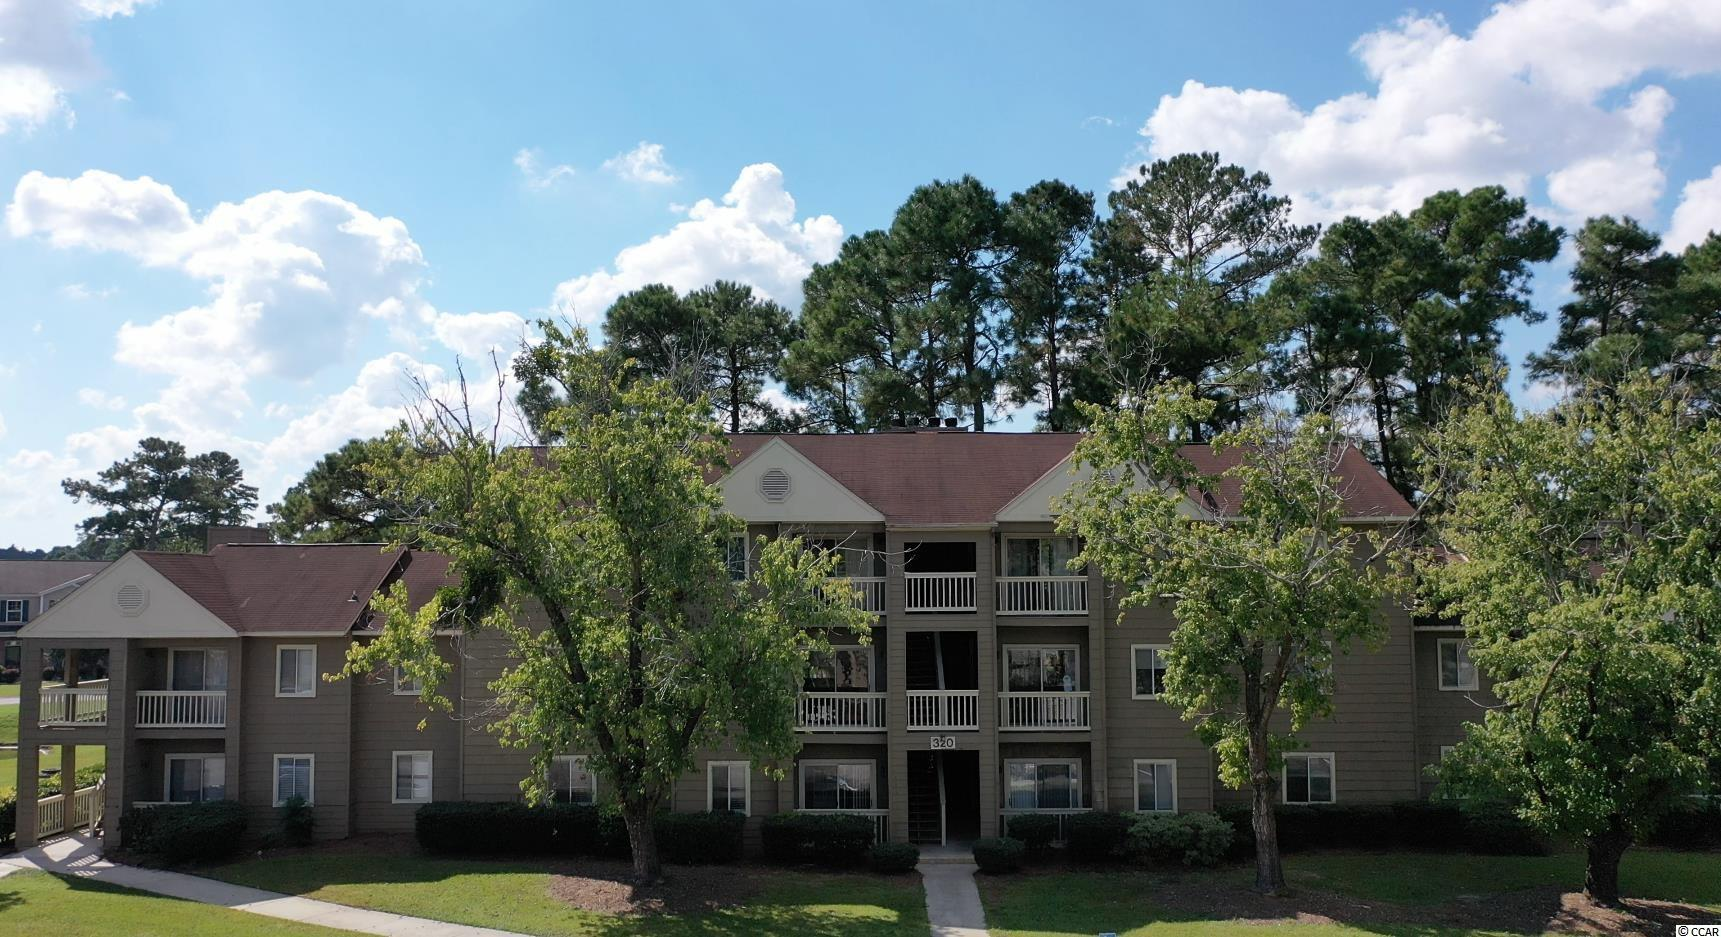 This welcoming 1st floor 2 bedroom 2 bath condo could be a gem you have been looking for. This piece of paradise is located in the popular Myrtle Greens community and will provide you with warm memories of your time here at the beach. Let's begin with LVP wood flooring, classic living/dining room combo that showcases a sliding glass door that opens up the relaxing balcony. The updated kitchen is equipped with new cabinets, granite counter tops, and a stainless steel appliance package. The master bedroom offers a walk-in closet with custom shelving, private access to the master bath featuring a new single sink vanity, a comfort station, and a timeless tub/shower combo. The delightful condo is completed with an additional bedroom with access to the full guest bath, and a practical laundry closet. This condo affords you easy access to the beach and golfing along with all of the other activities and happenings in Myrtle Beach & Conway including fun eateries, award winning off-Broadway shows, public fishing piers, Conway's historic riverwalk, and intriguing shopping adventures along the Grand Strand. Conveniently located to your everyday needs, including grocery stores, banks, post offices, medical centers, doctors' offices, and pharmacies. Check out our state of the art 3-D Virtual Tour.